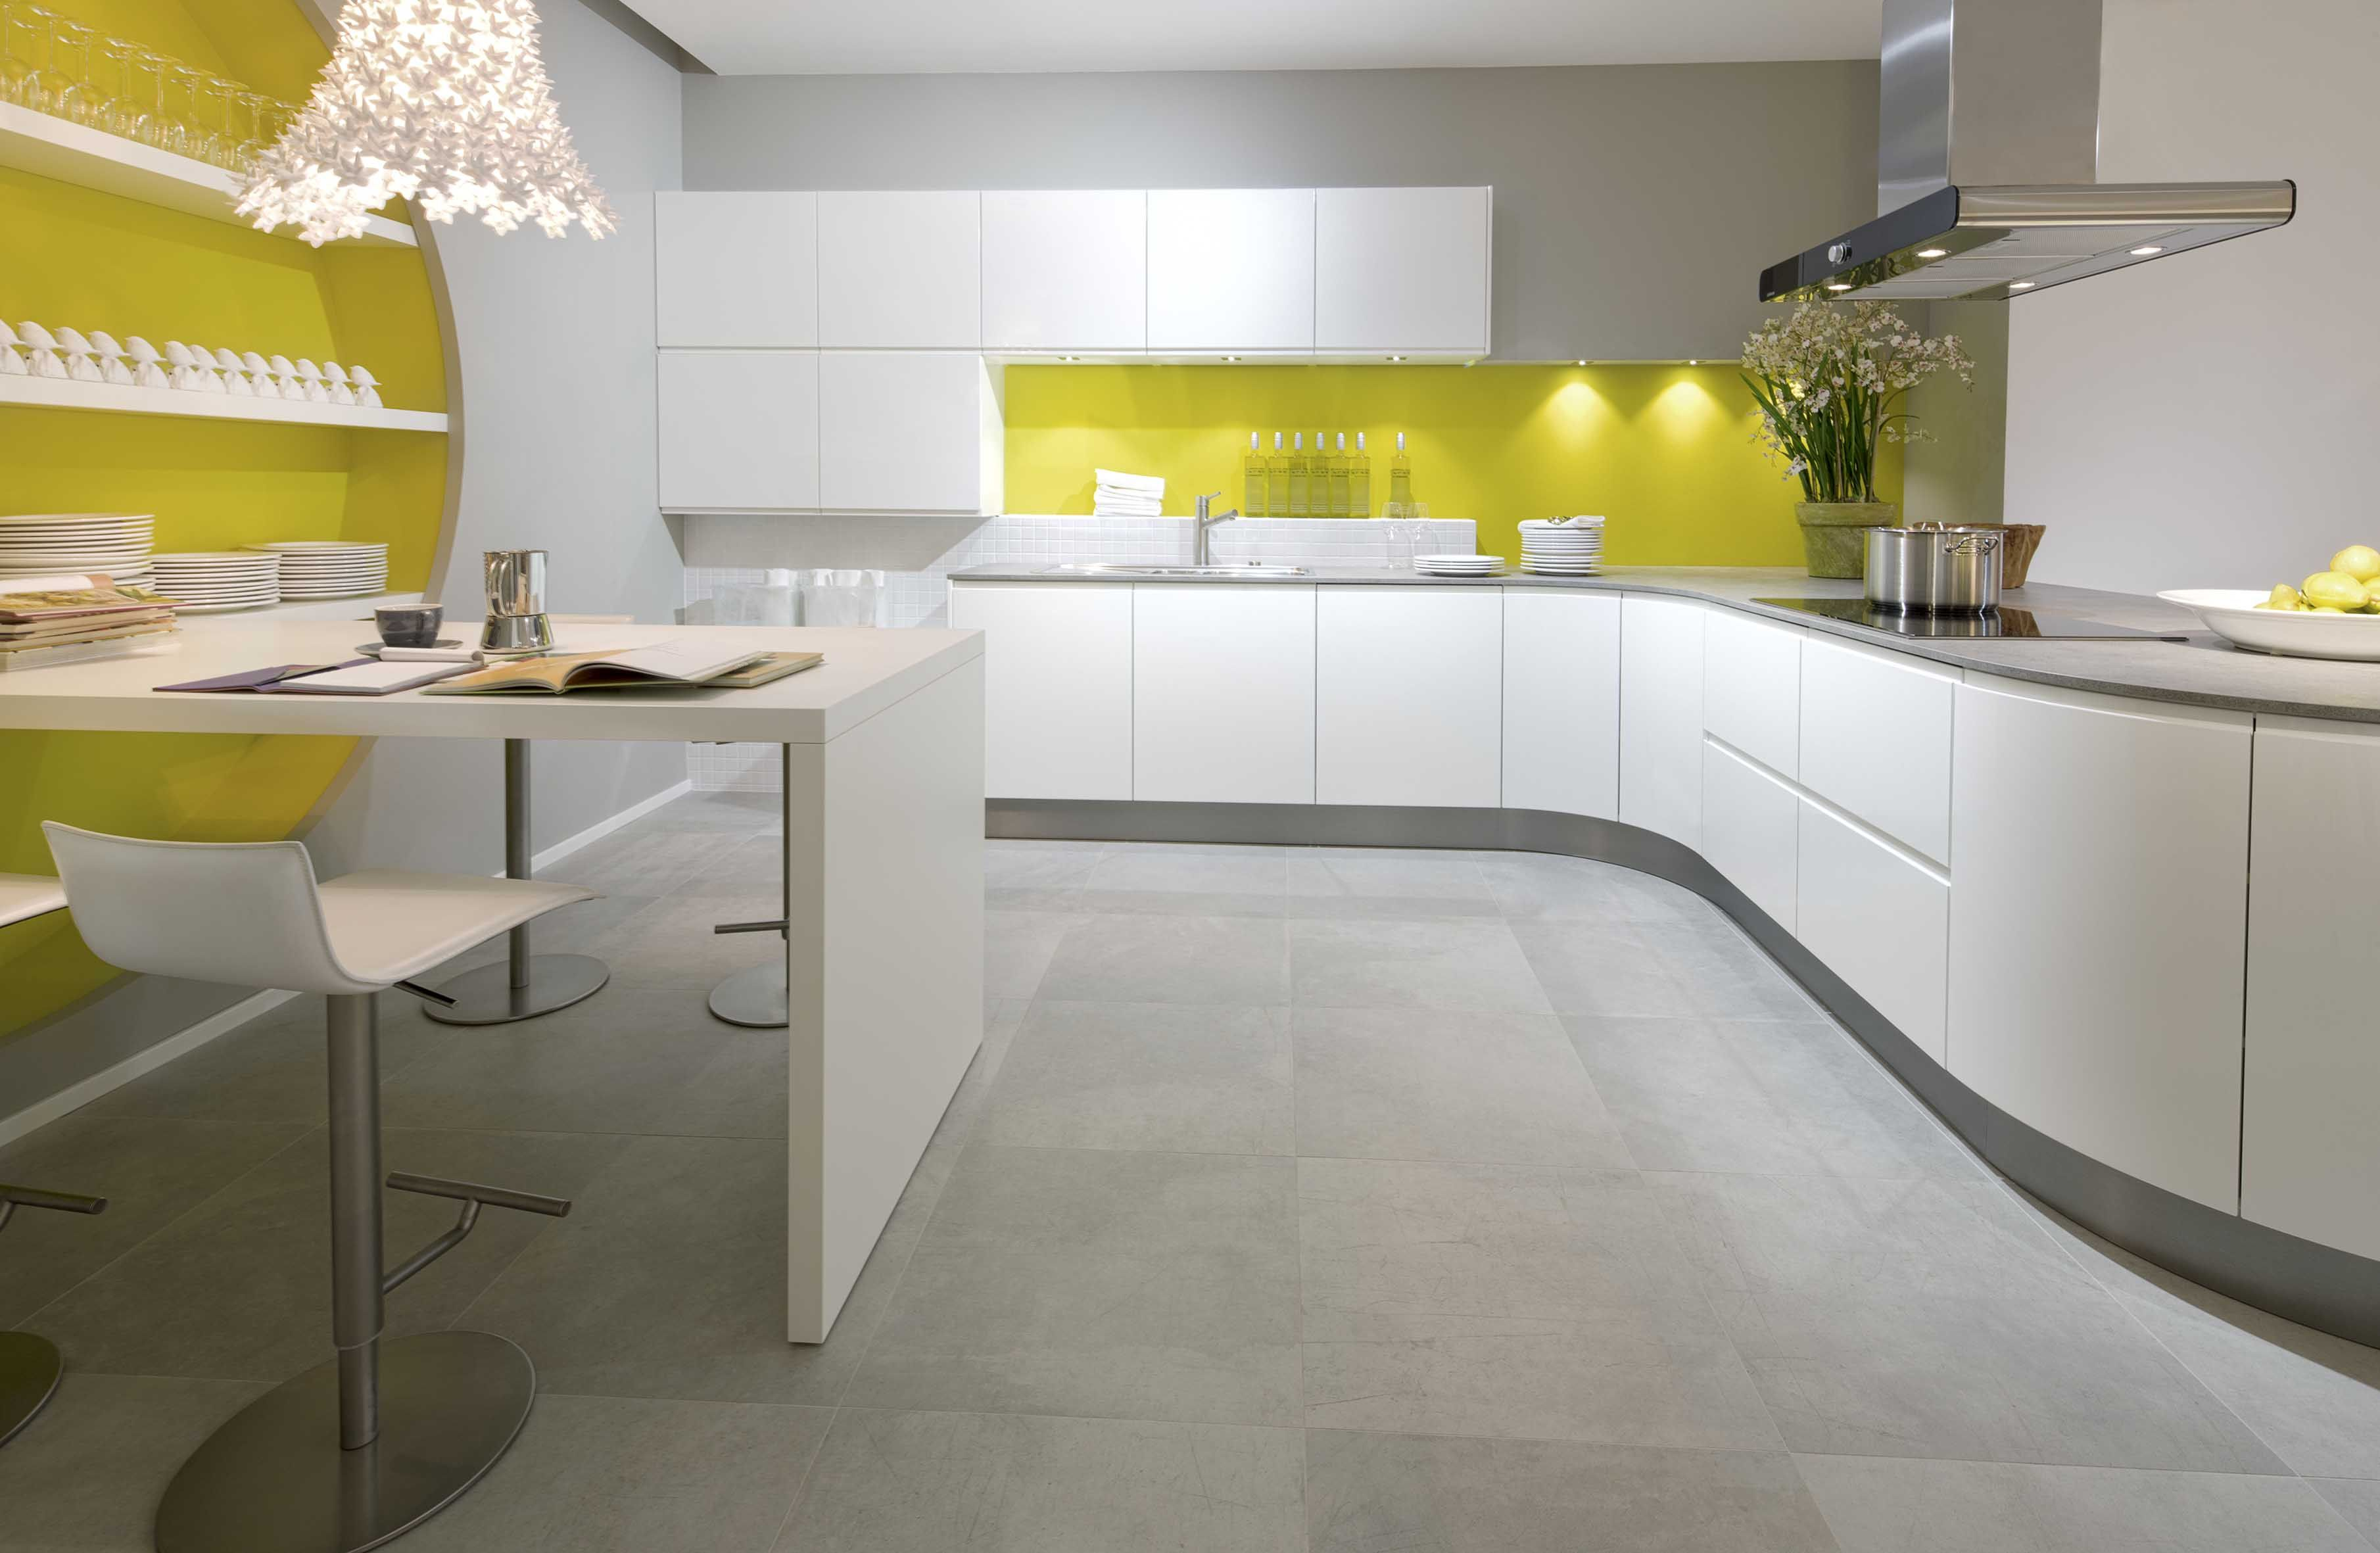 Color & Modern | Cuisine | Pinterest | Electro music, Cucina and Cuisine